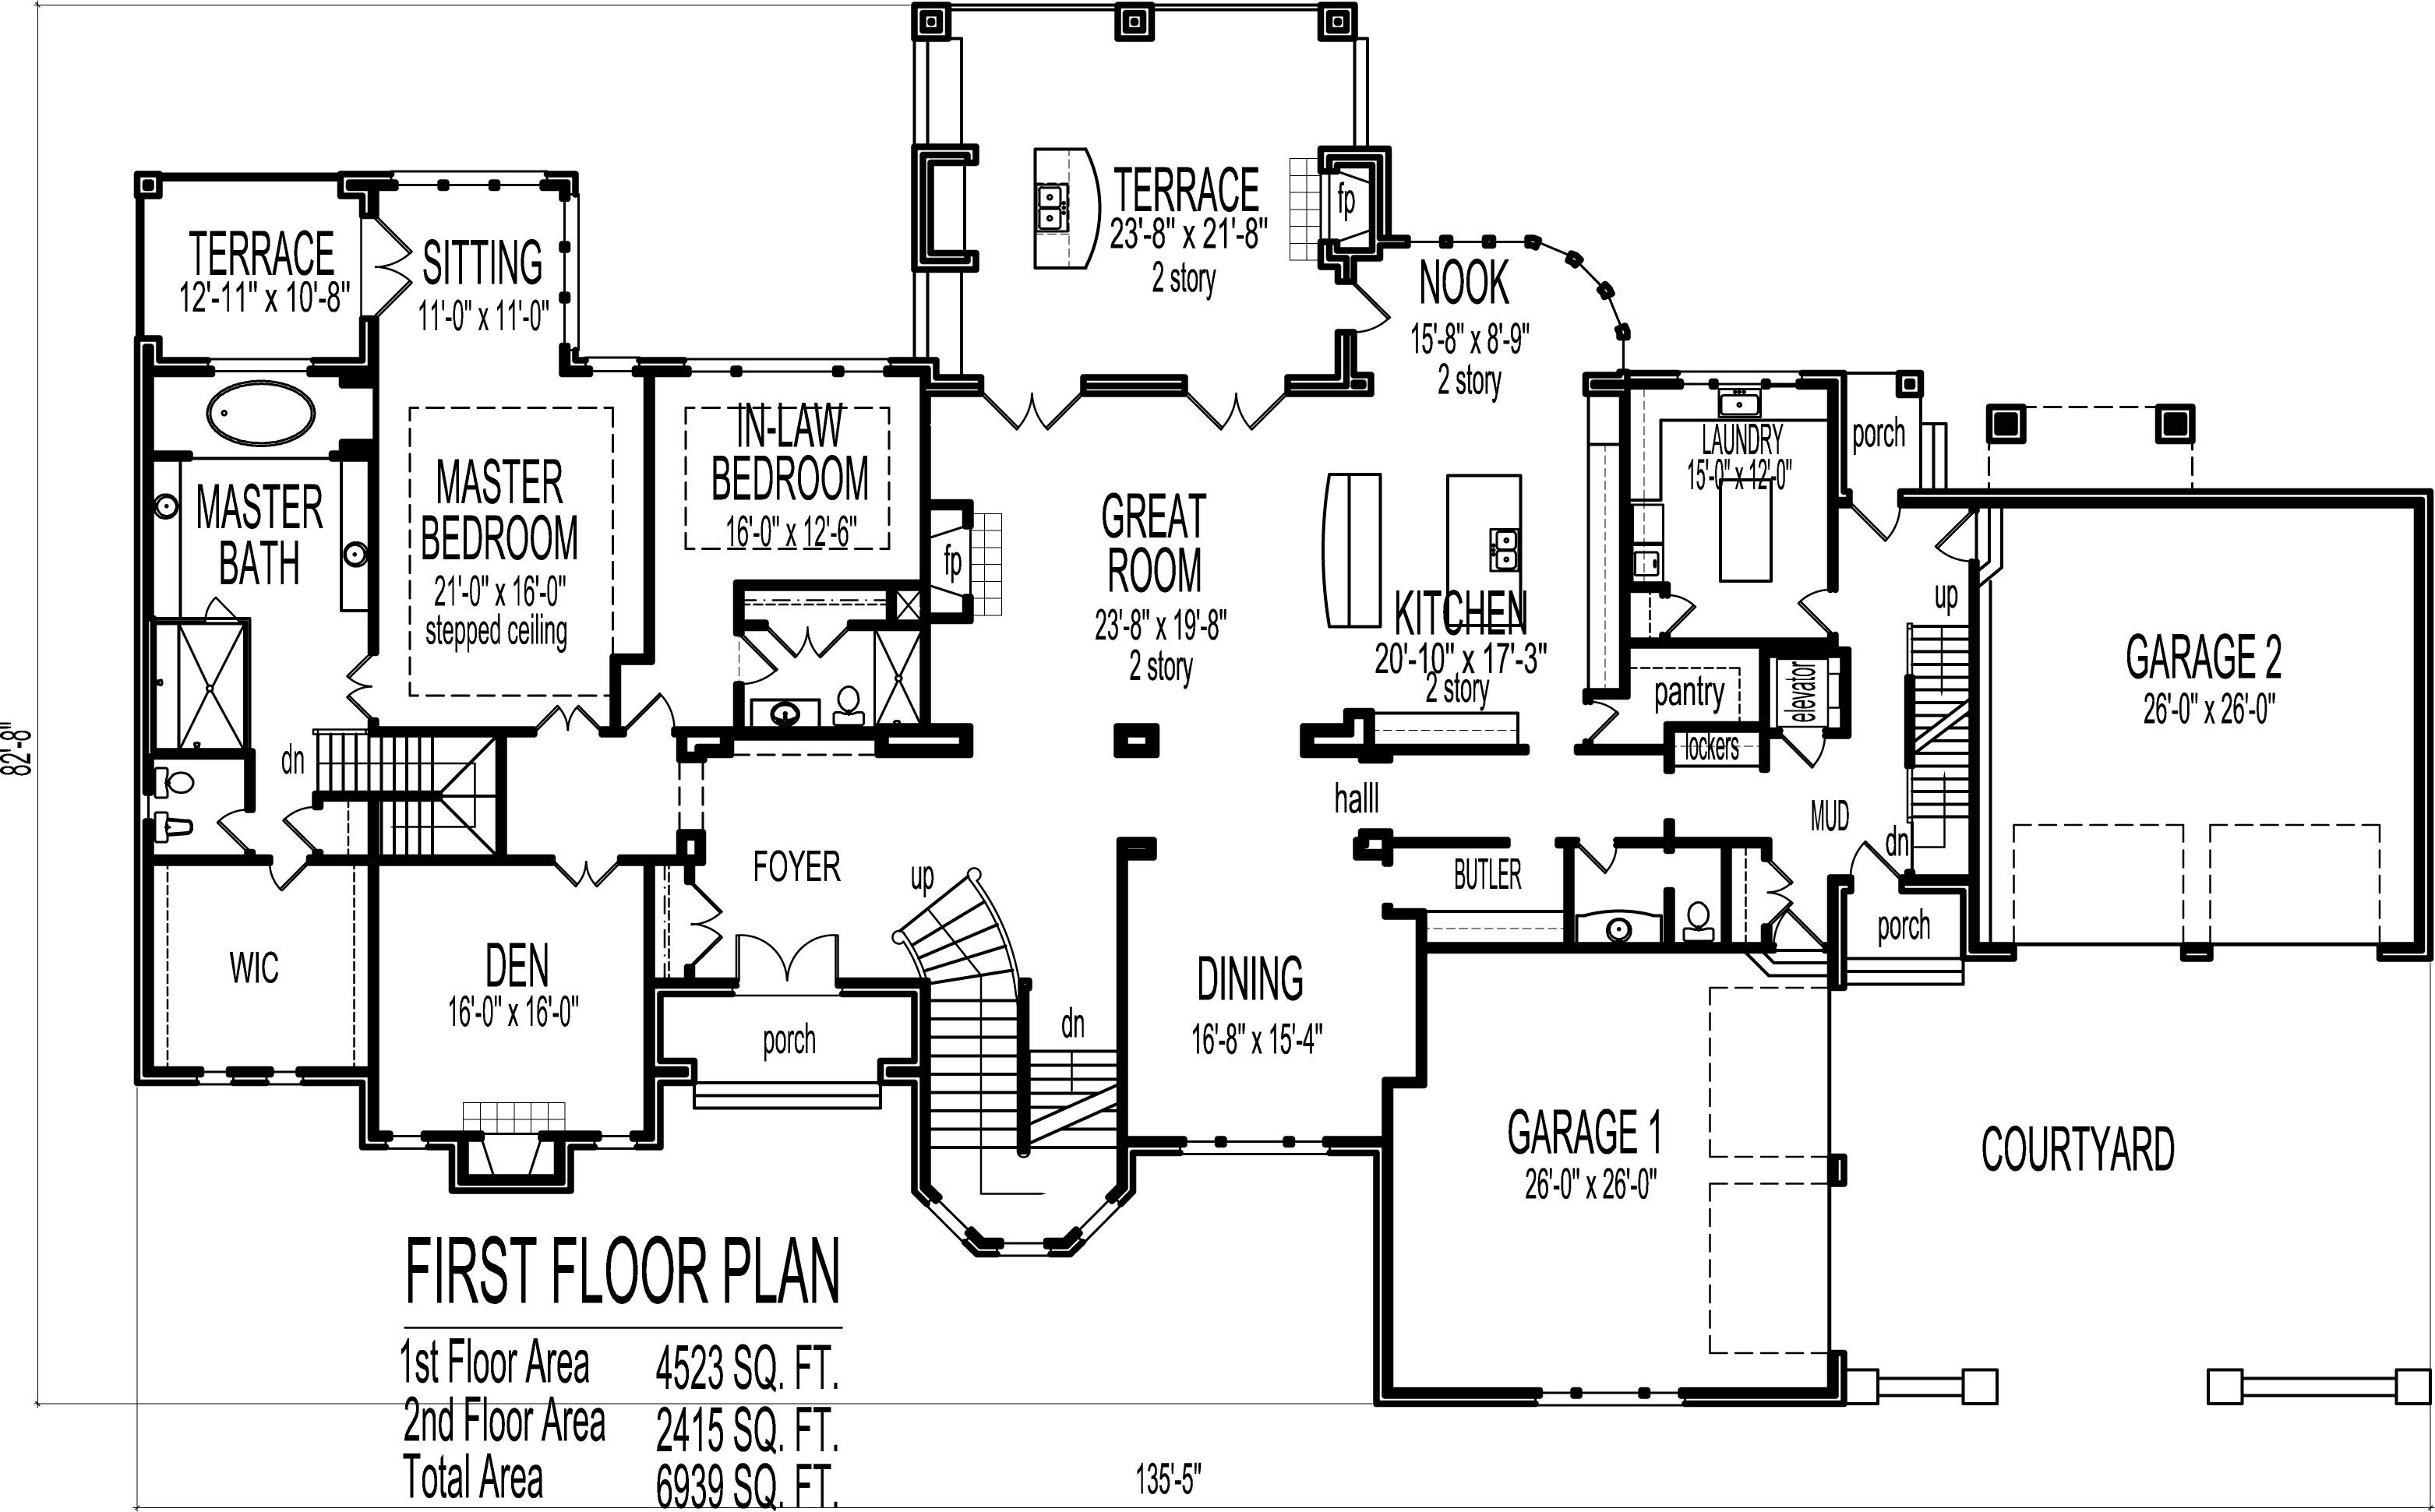 6 bedroom 7 bathroom dream home plans indianapolis ft wayne evansville indiana south bend lafayette bloomington